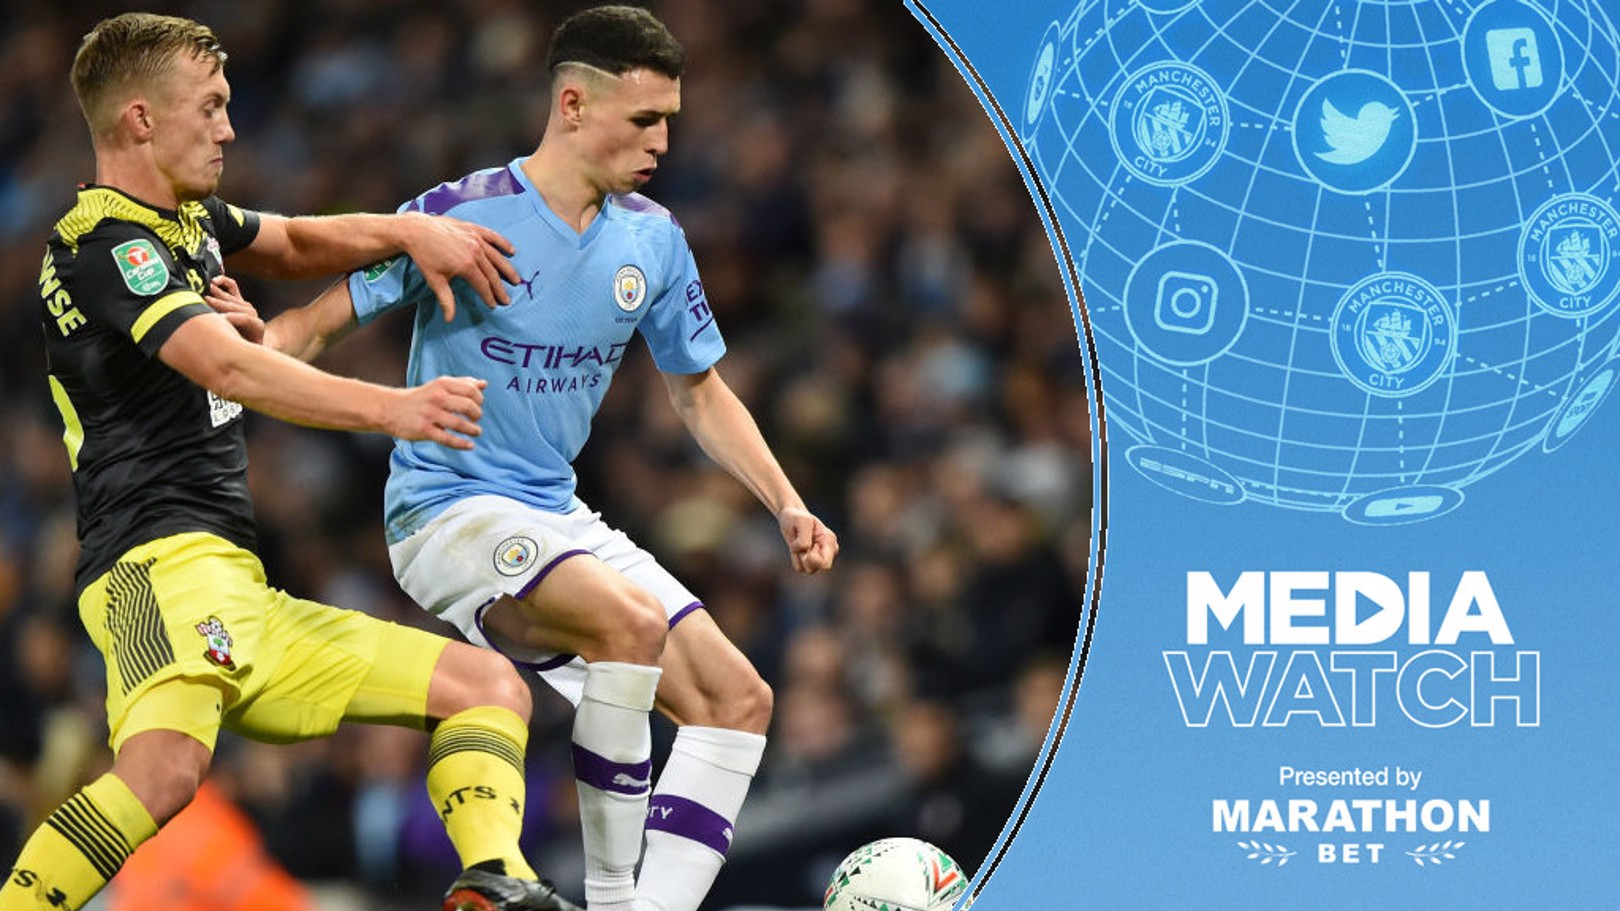 MEDIA WATCH: Phil Foden has been praised for his performance against Southampton.